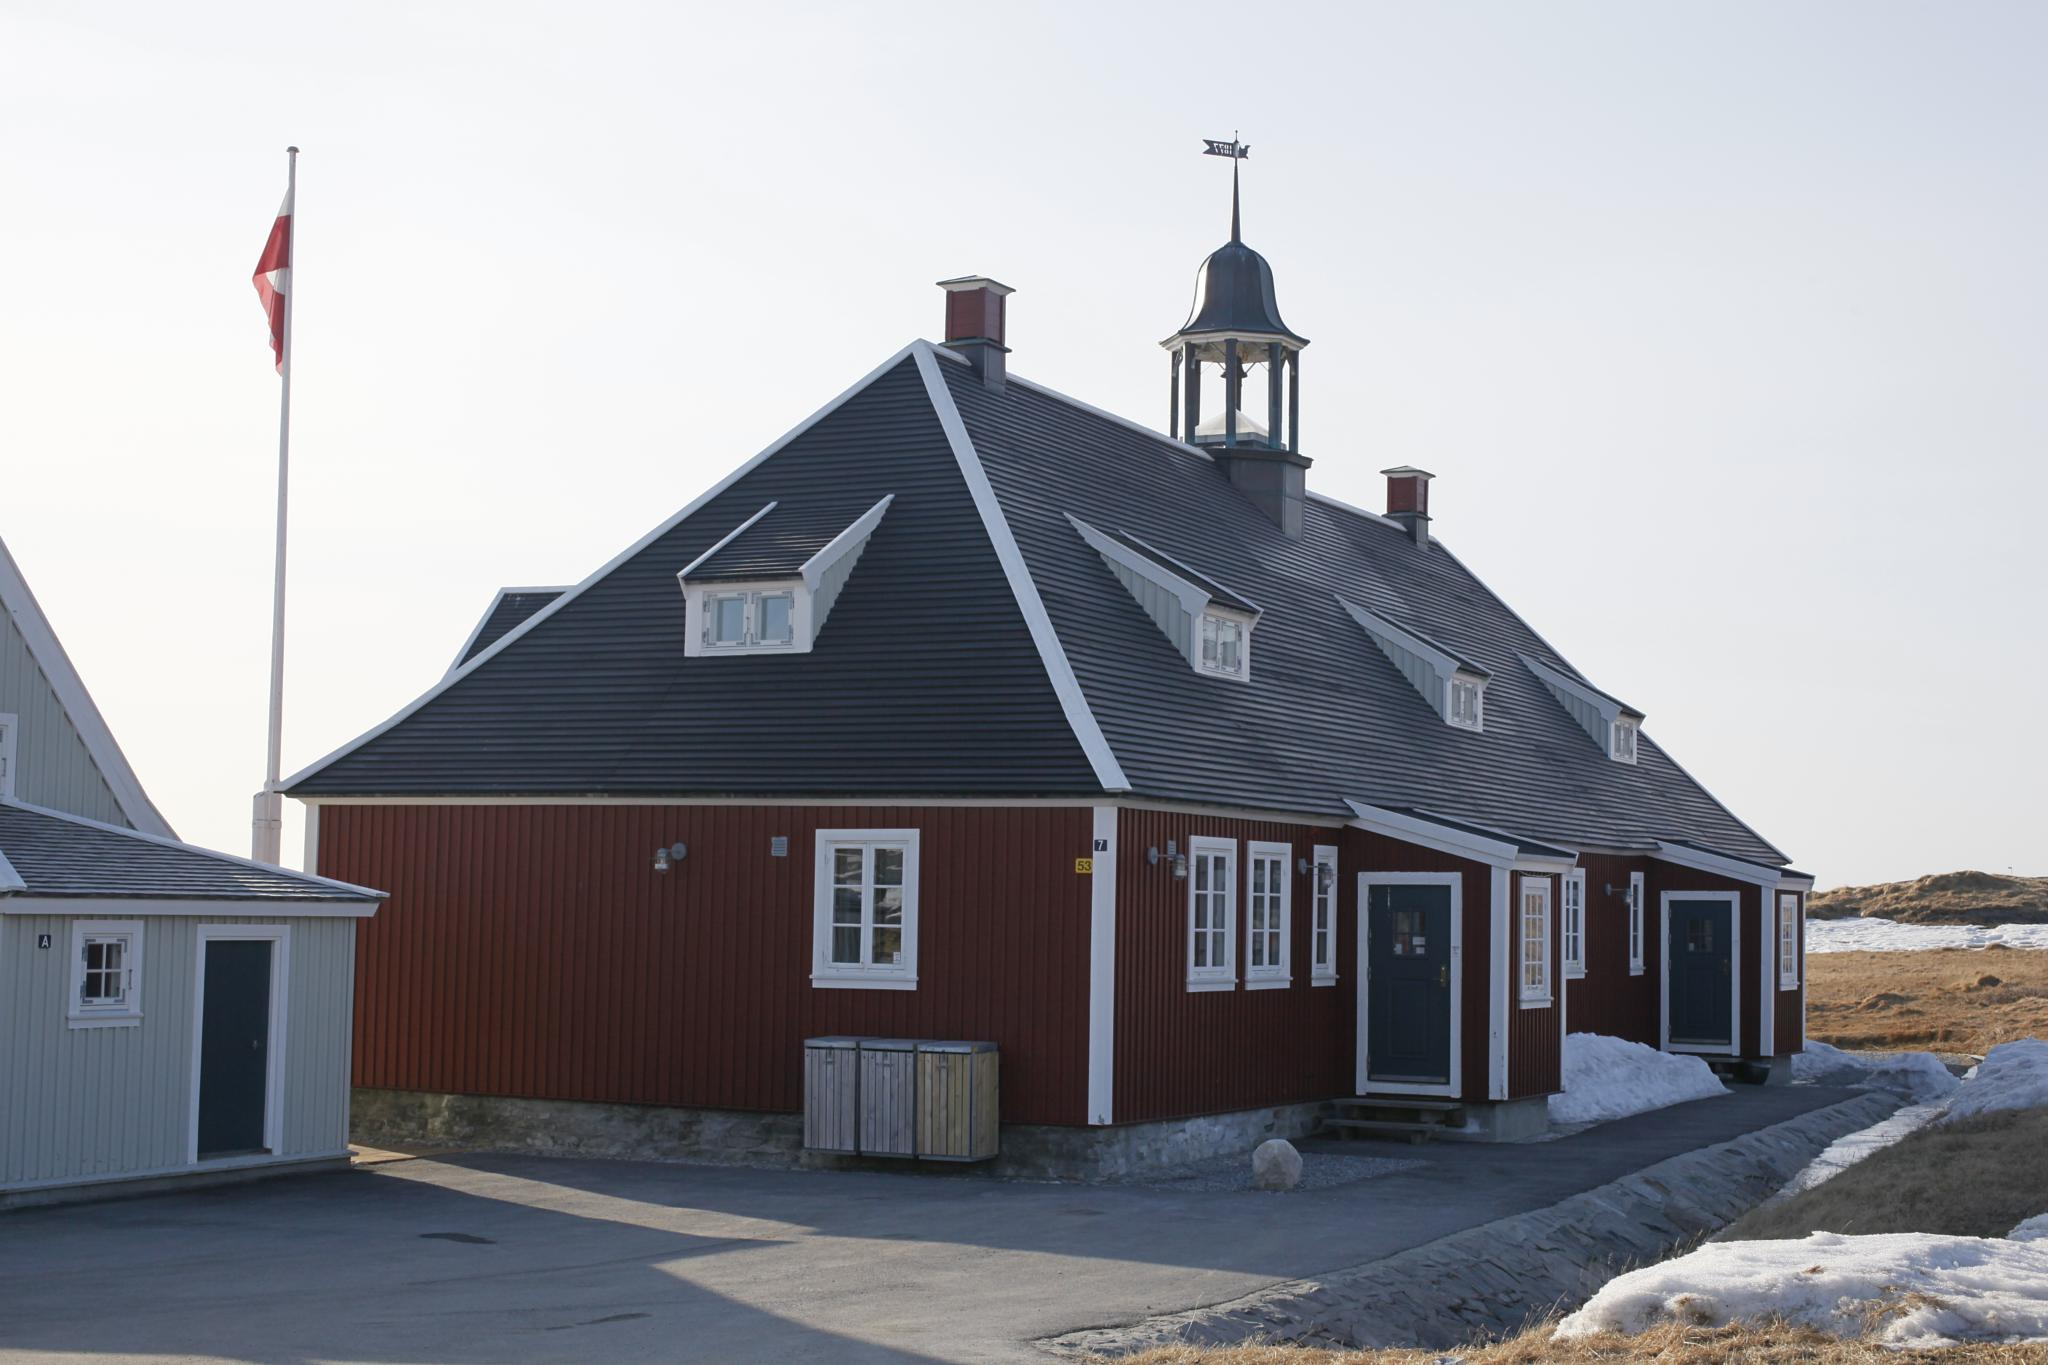 the old hernhut church from medio 1700 , mostly greenlanders is protestant cristain. by Tom Augo Lynge